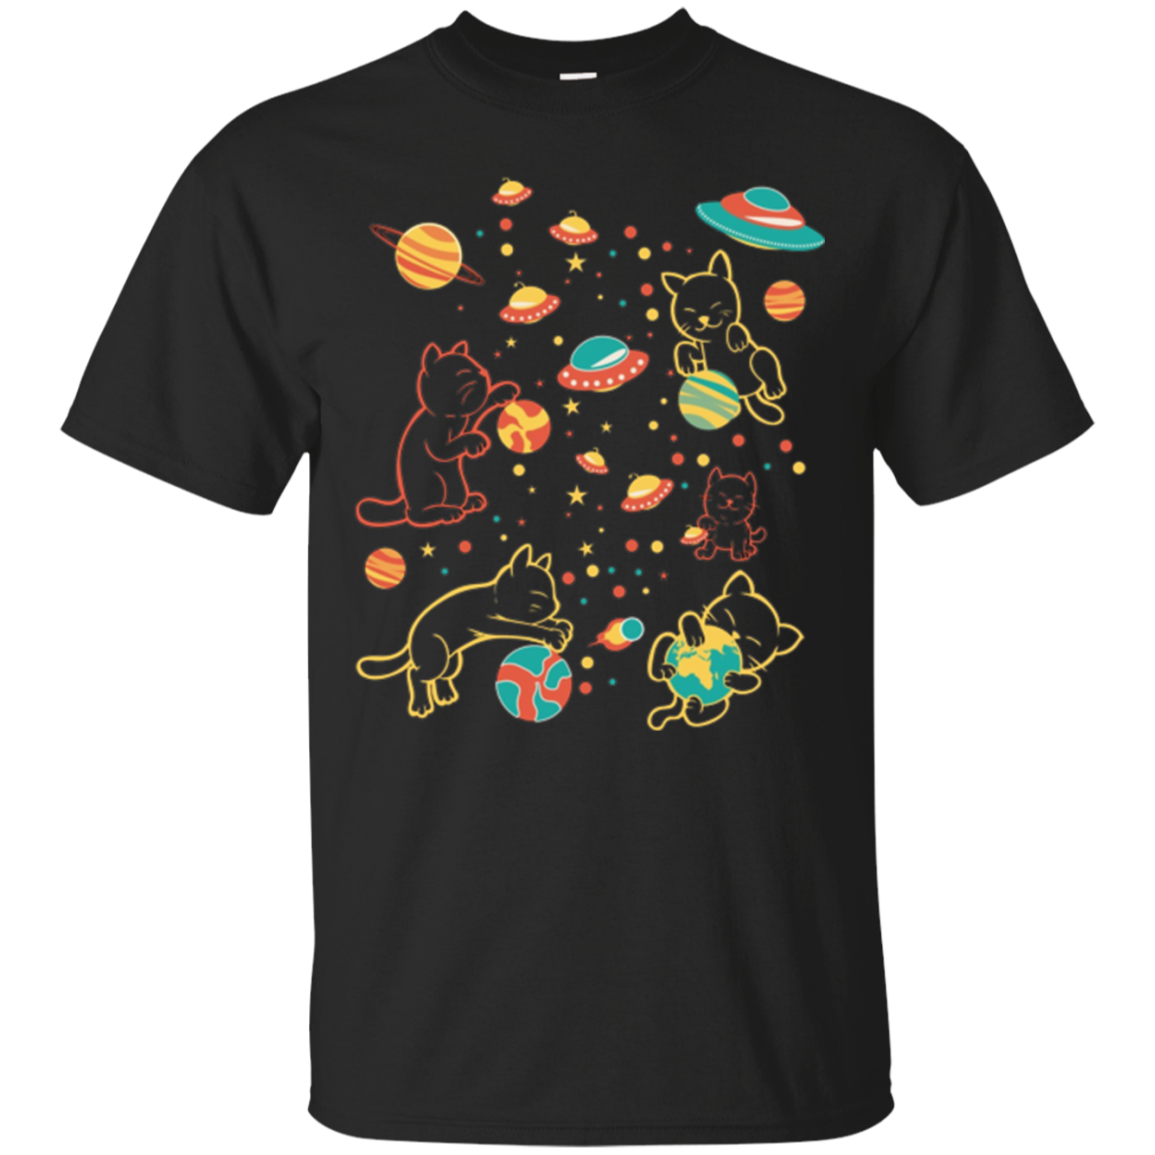 Cats in space planets solar system random odd funny kitty